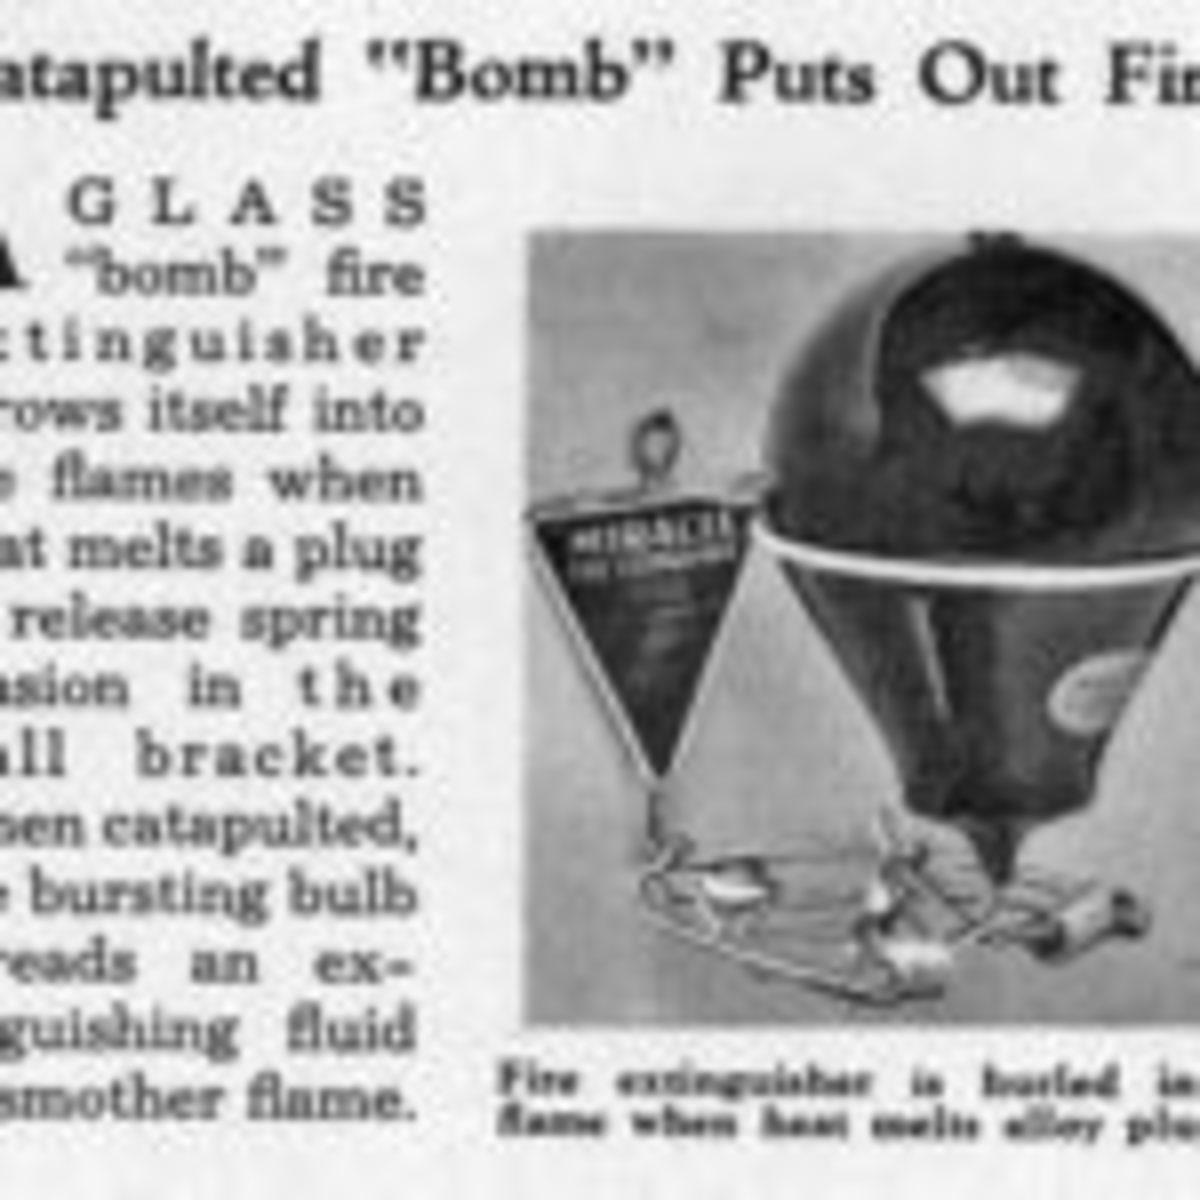 "Article from August 1935 issue of Modern Mechanix; ""Catapulted Bomb Puts Out Fire"" heat from fire triggers spring catapulting the bulbous fire grenade into the fire. In 1935 this was an innovation for use in factories and commercial buildings. But one has to pause, if the heat from the flames can trigger the grenade the fire is probably already out of control."